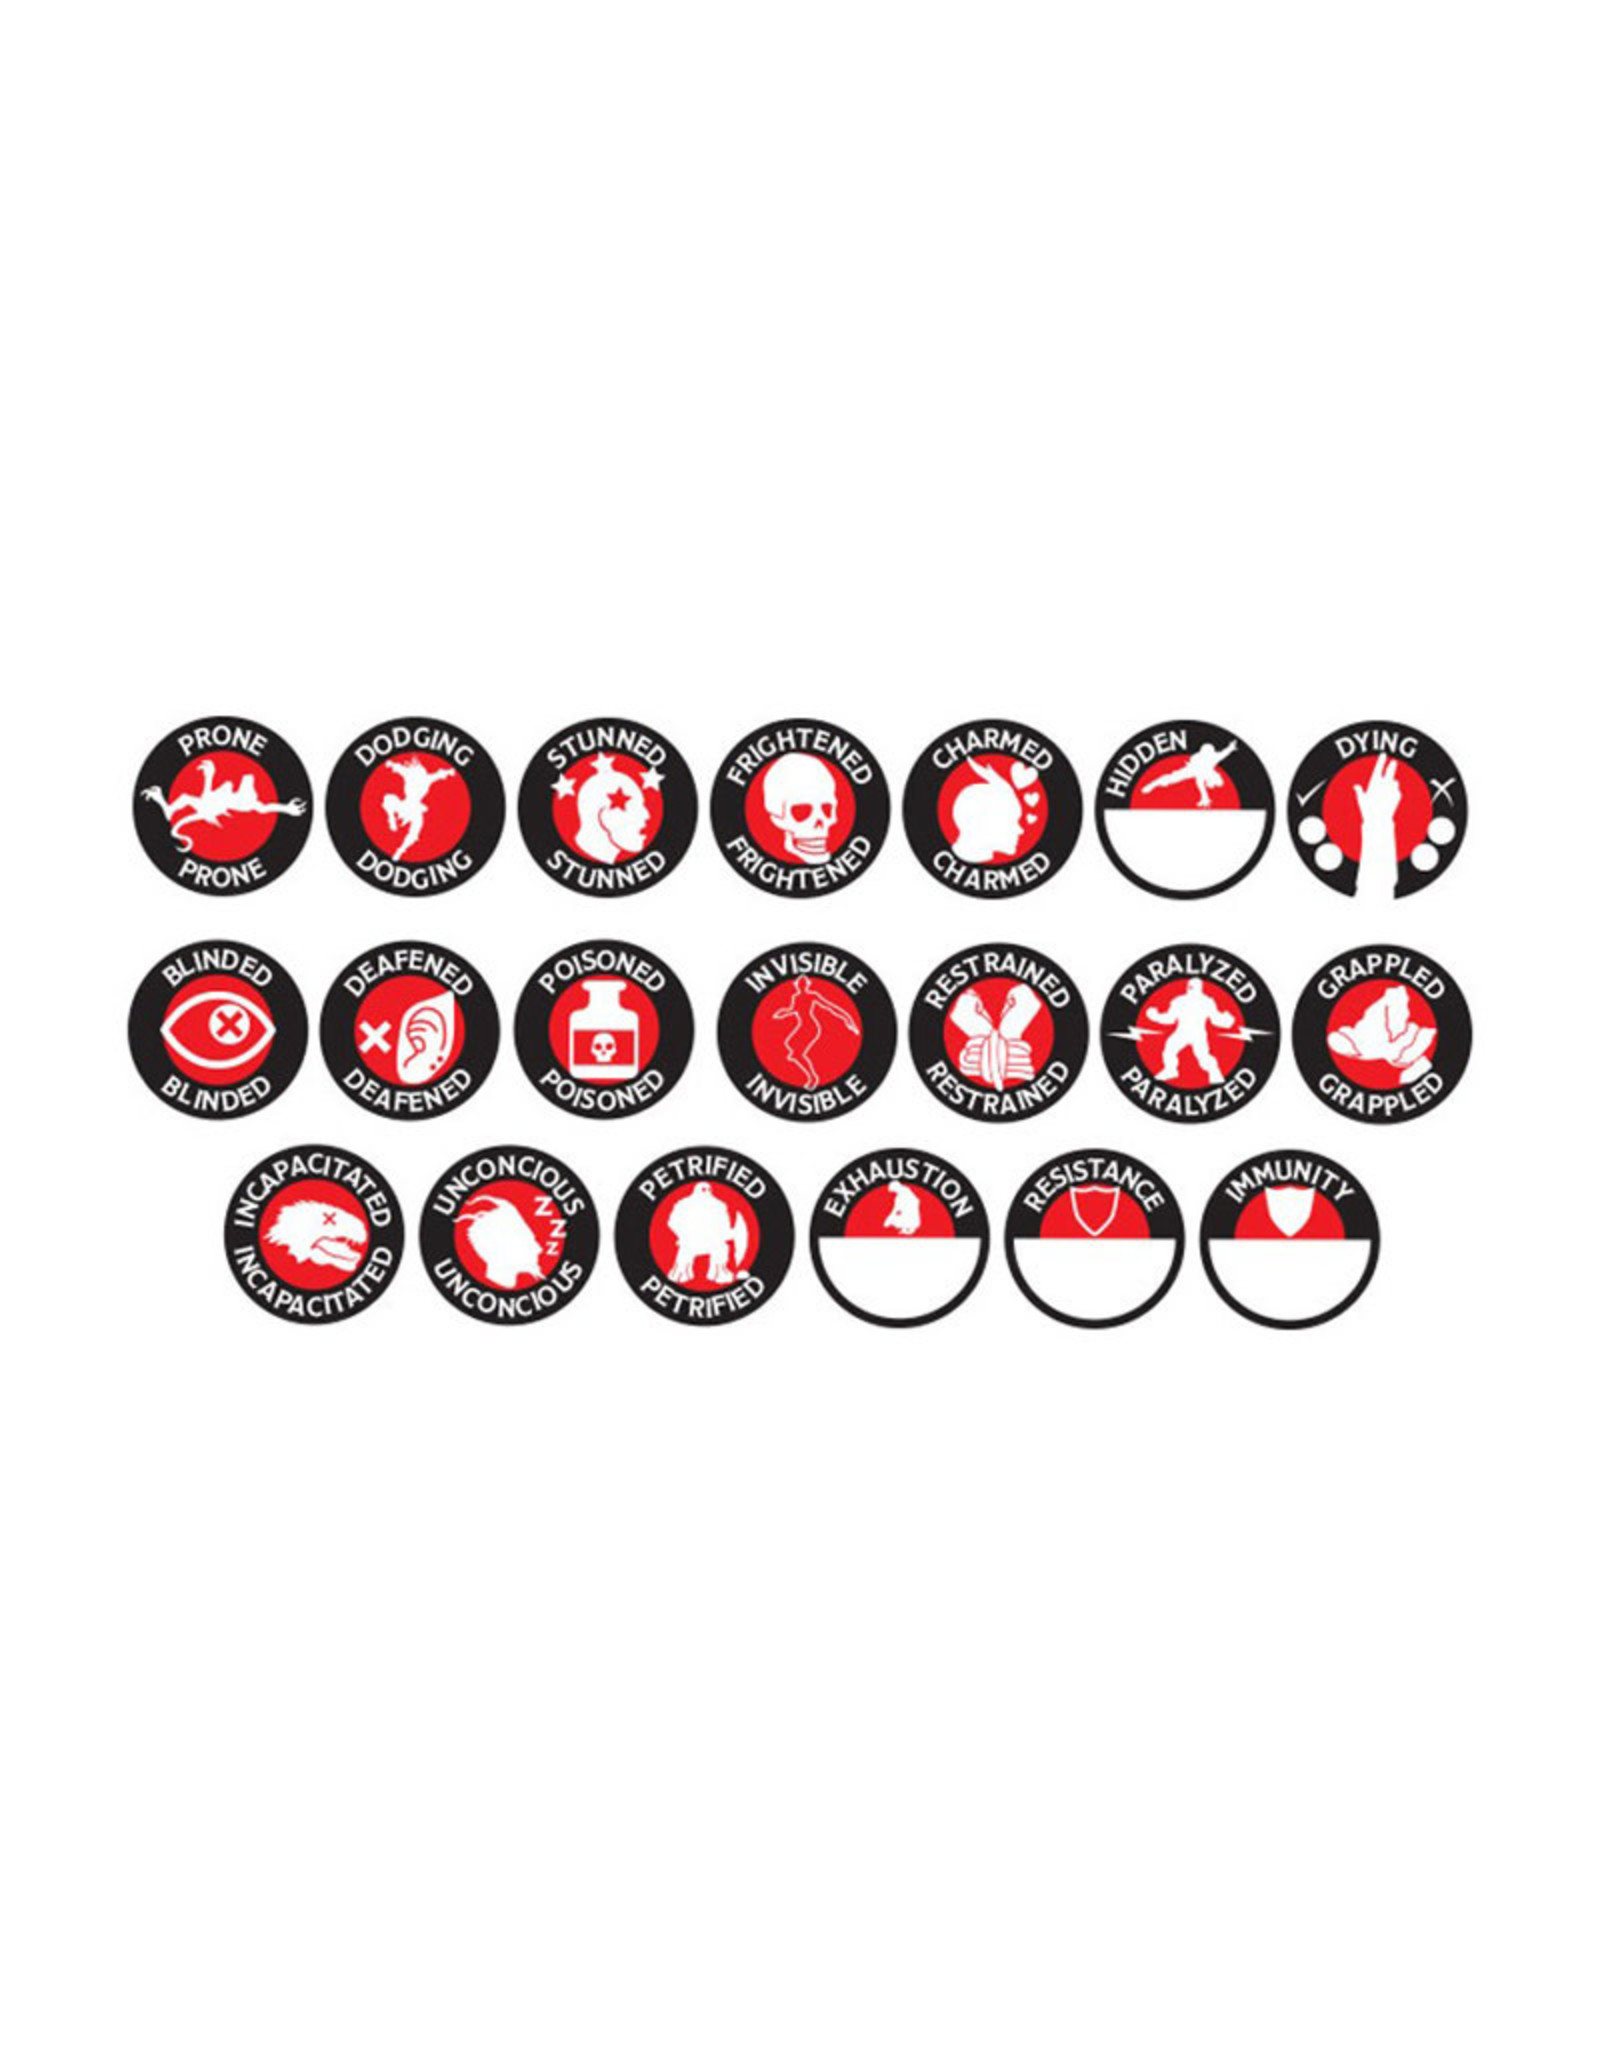 Gale Force 9 Tokens D&D RPG Character Token Set